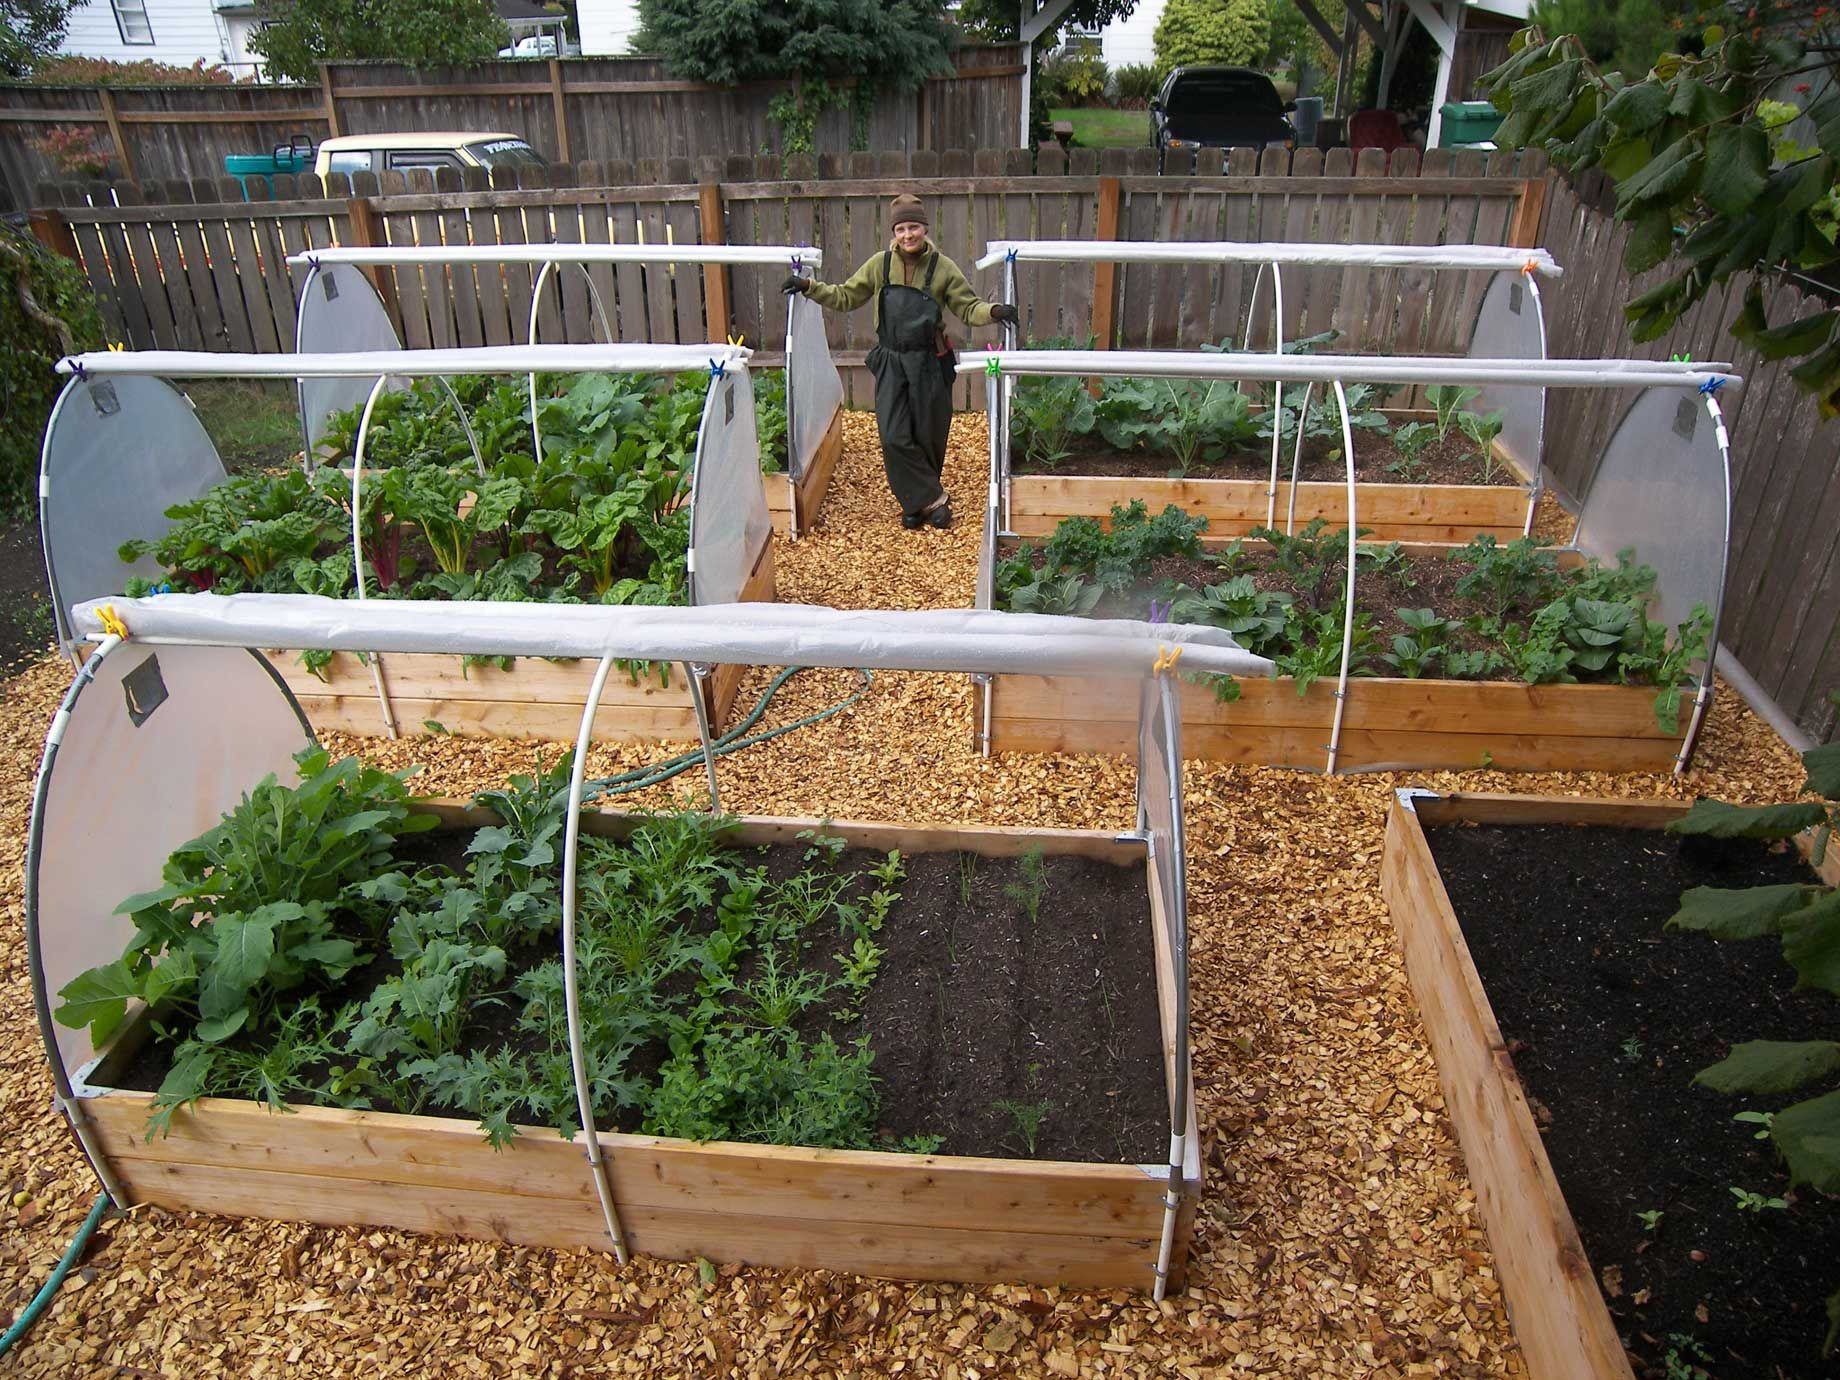 diy vegetable garden made with pallets diy vegetable garden ideas